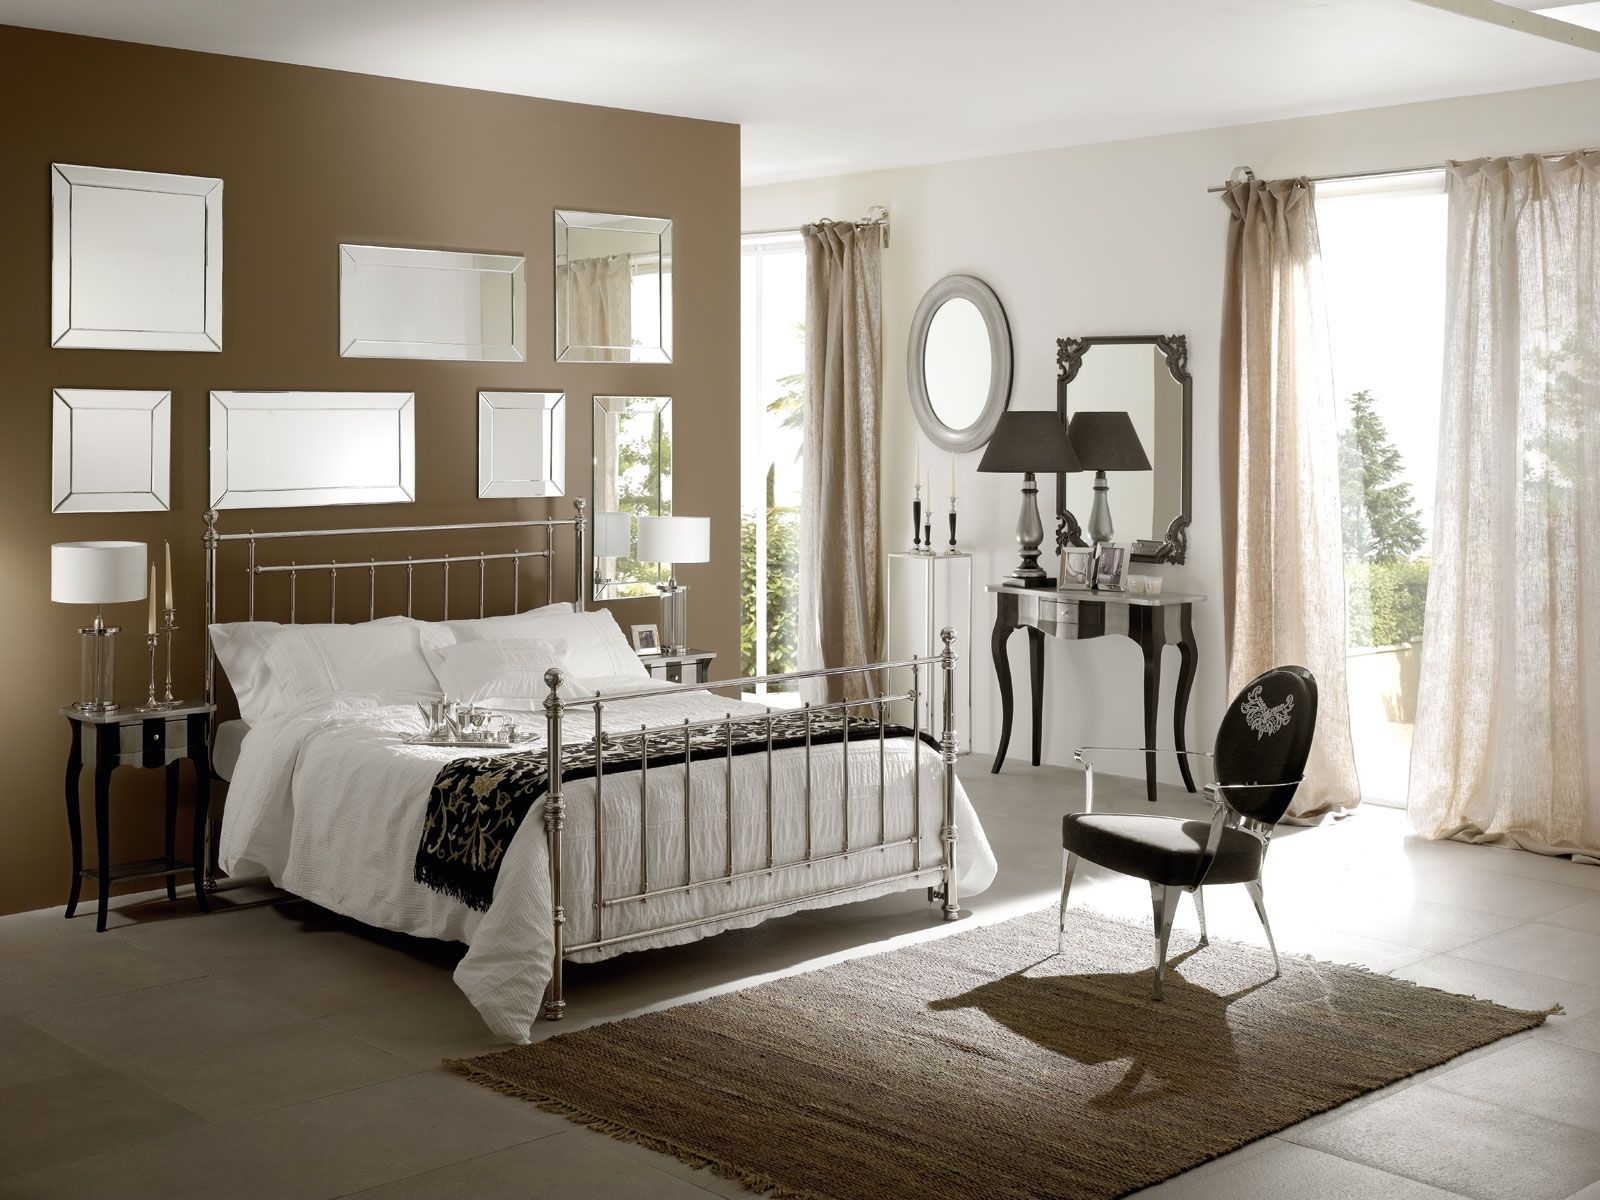 Loft bed with desk and dresser  Romantic Bedroom Design With White Bed And Black Chair Dressers